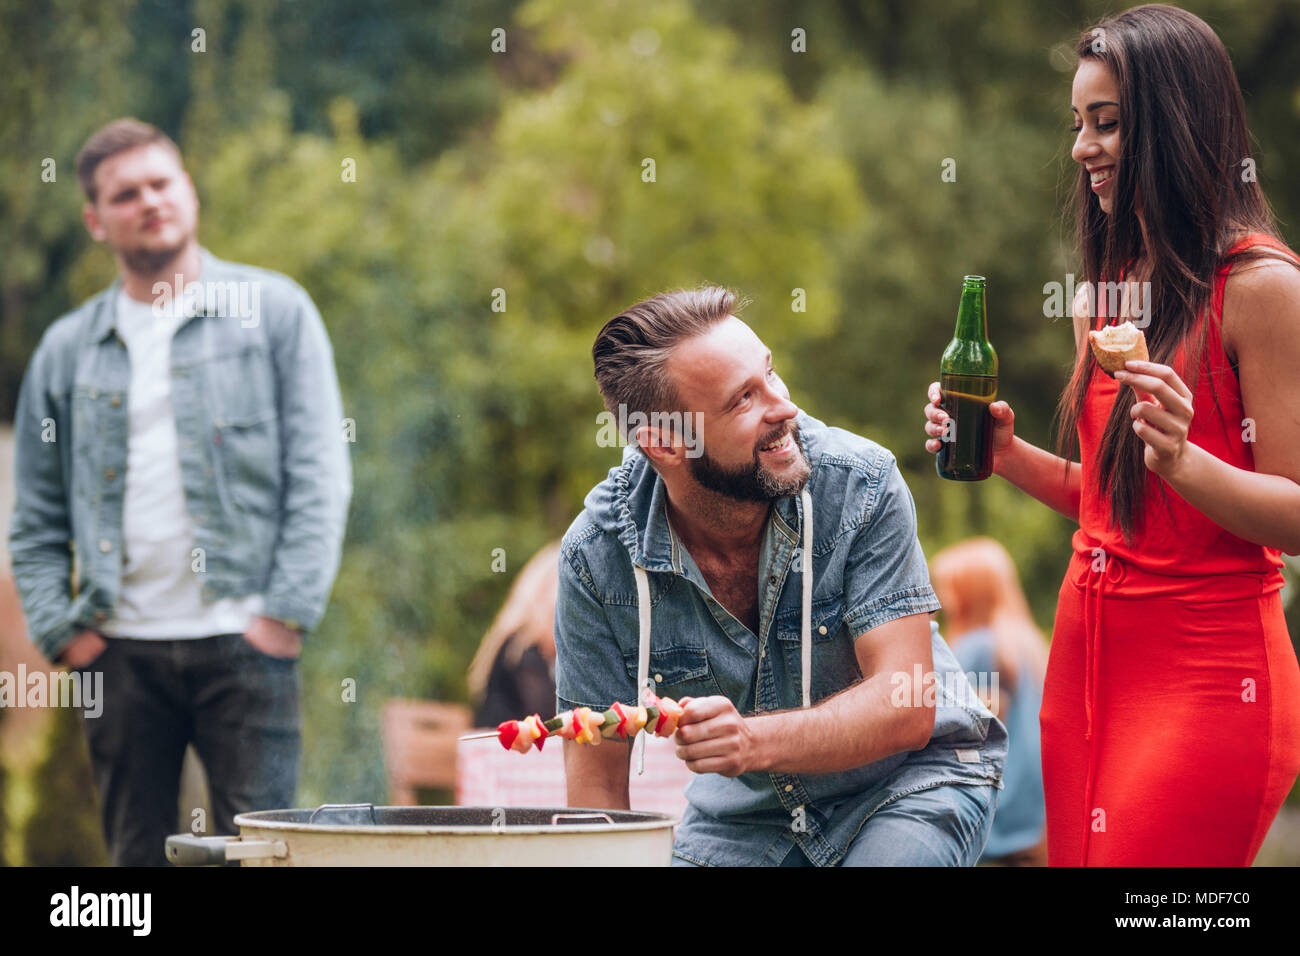 Smiling couple having a barbeque with their friends in the garden - Stock Image